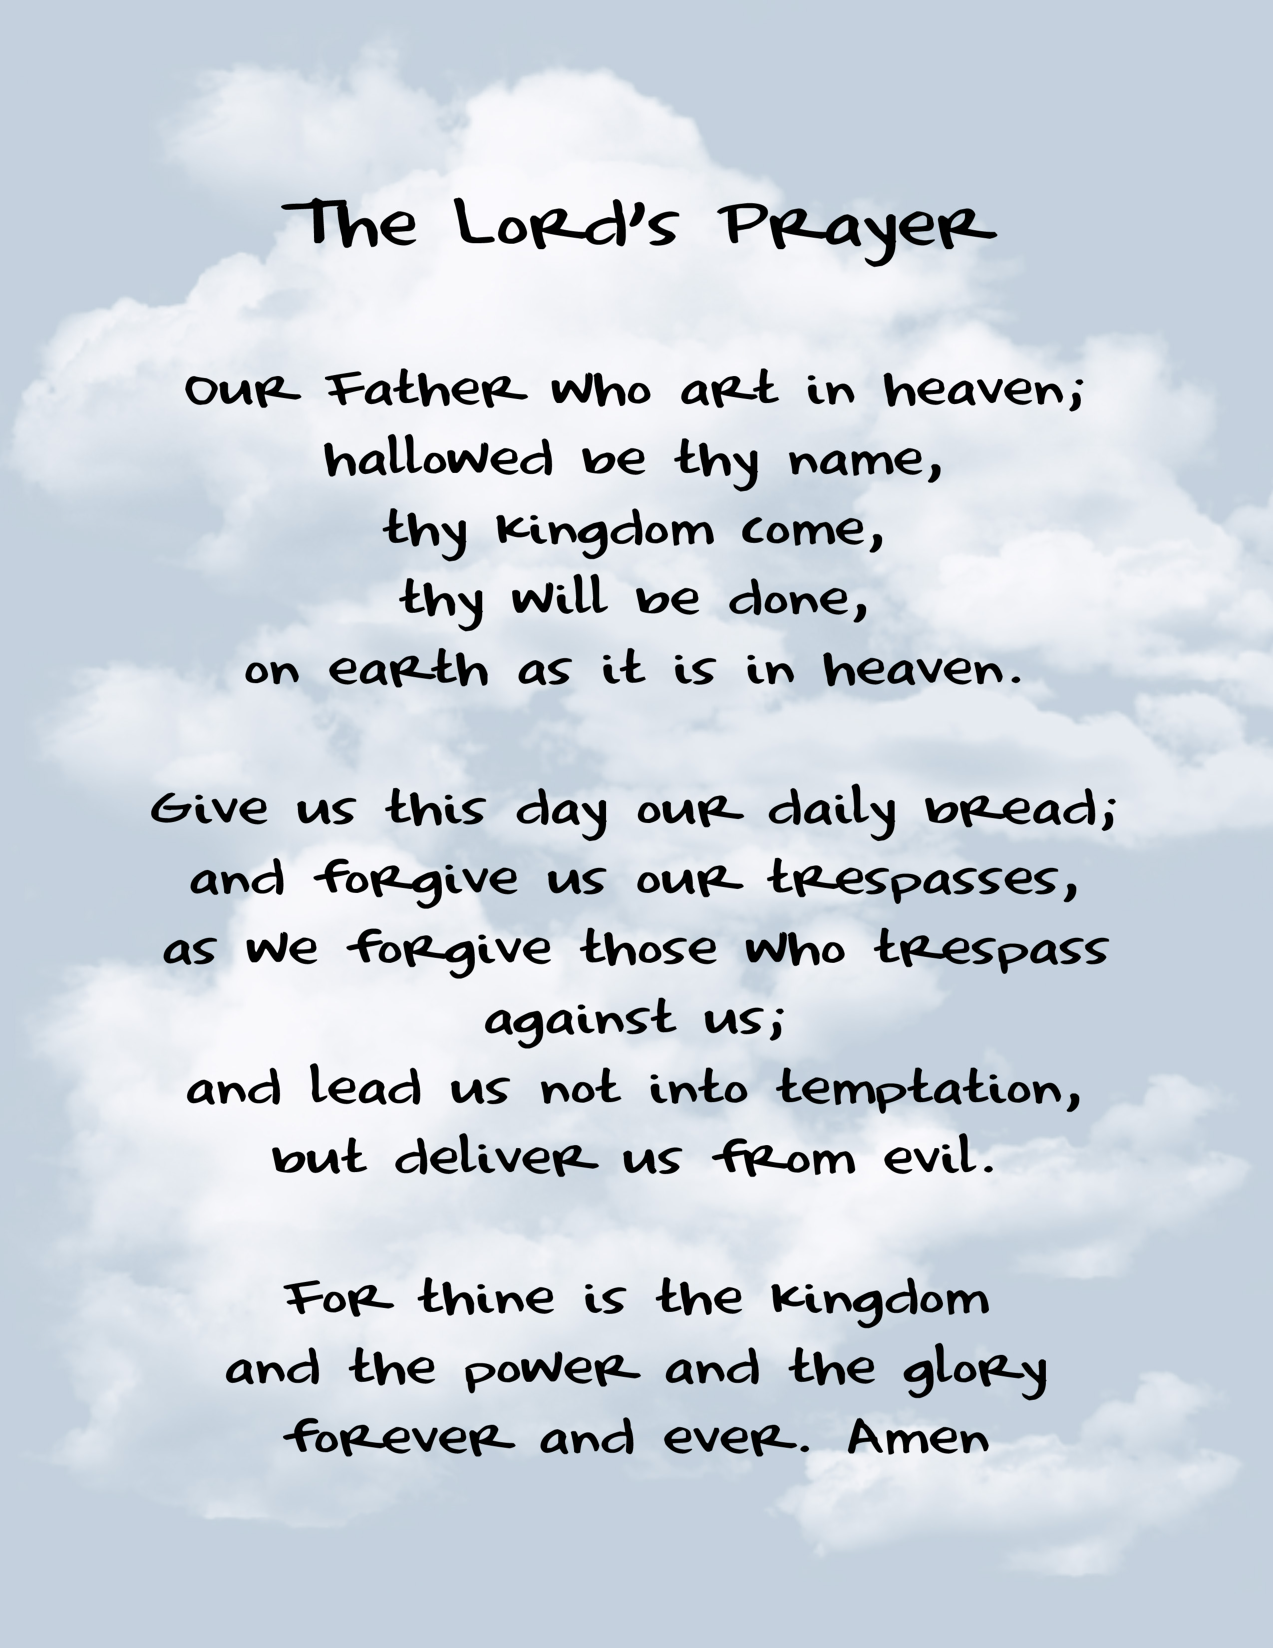 the Lord's prayer as a pattern of caring for God's need ...